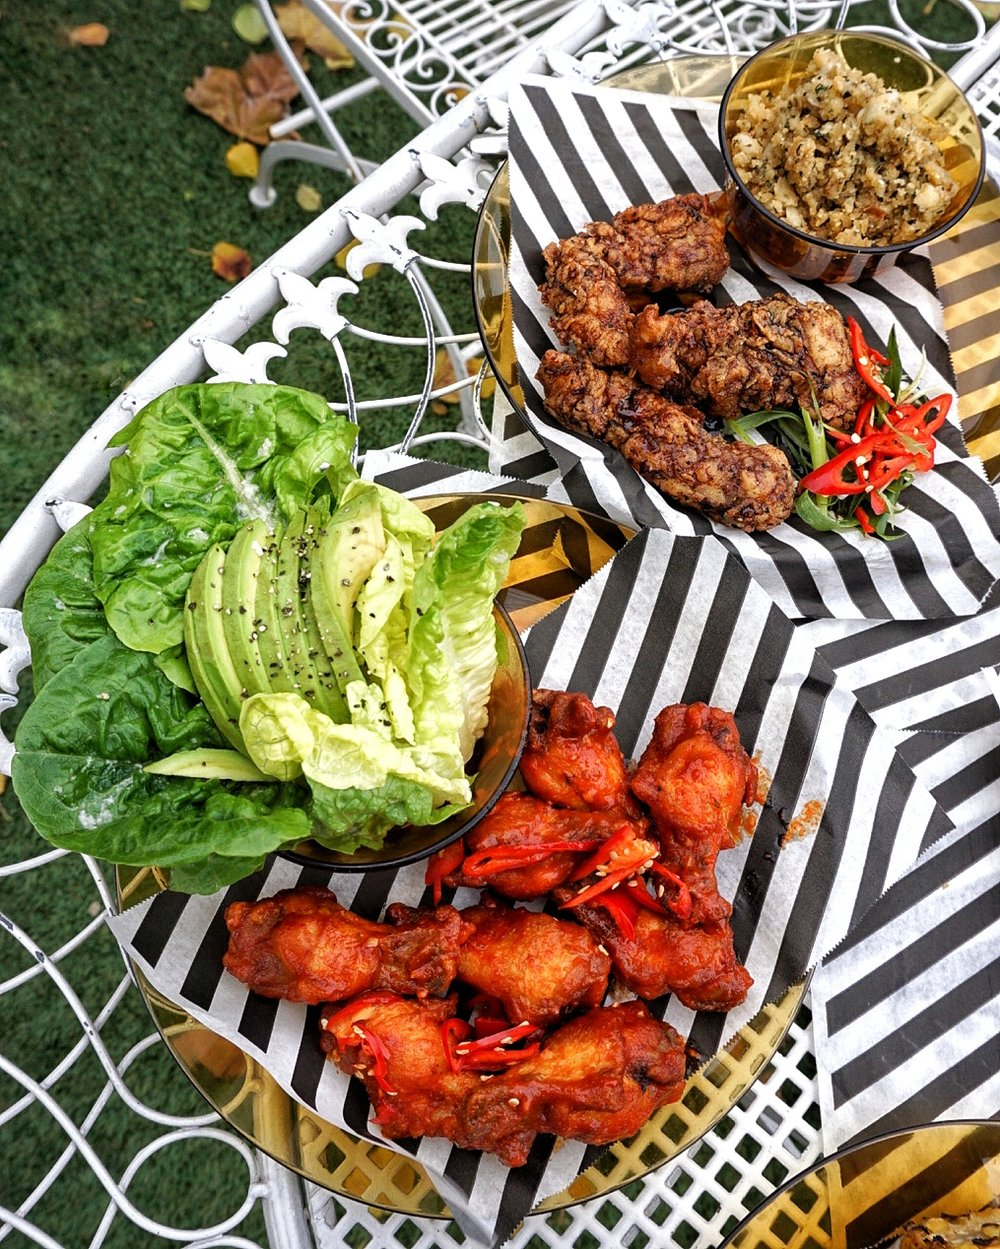 Wings and tenders, with salad and stuffing